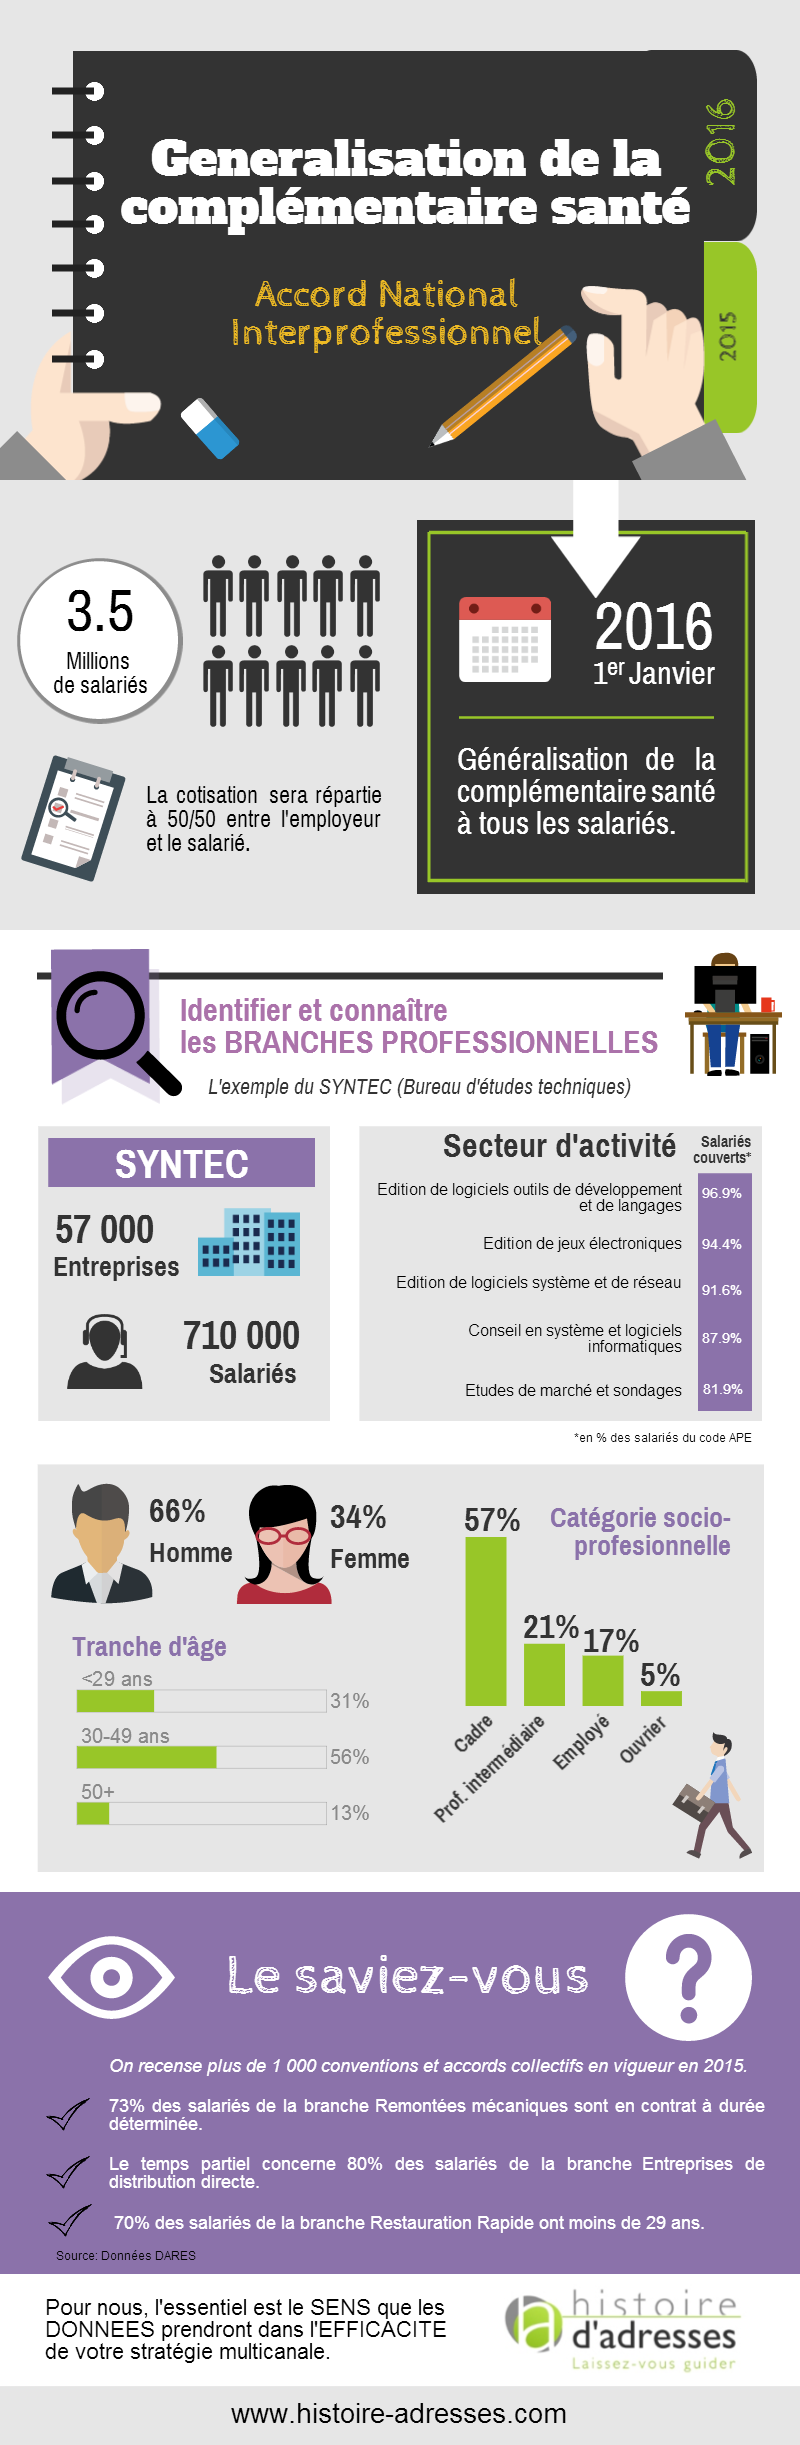 2015-03_INFOGRAPHIE_HISTOIRE-ADRESSES_ANI